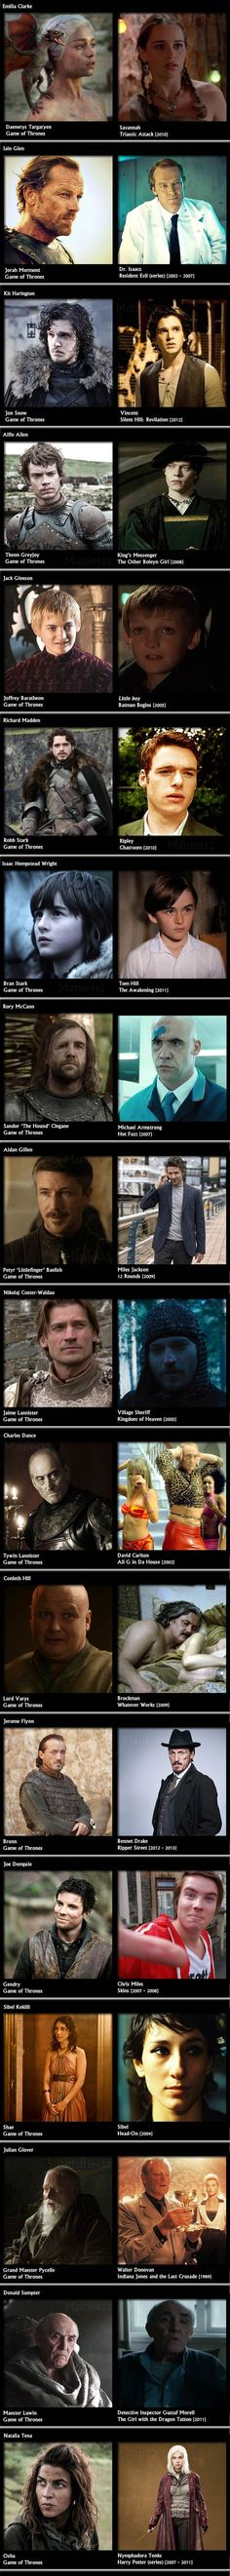 game of thrones actors-2